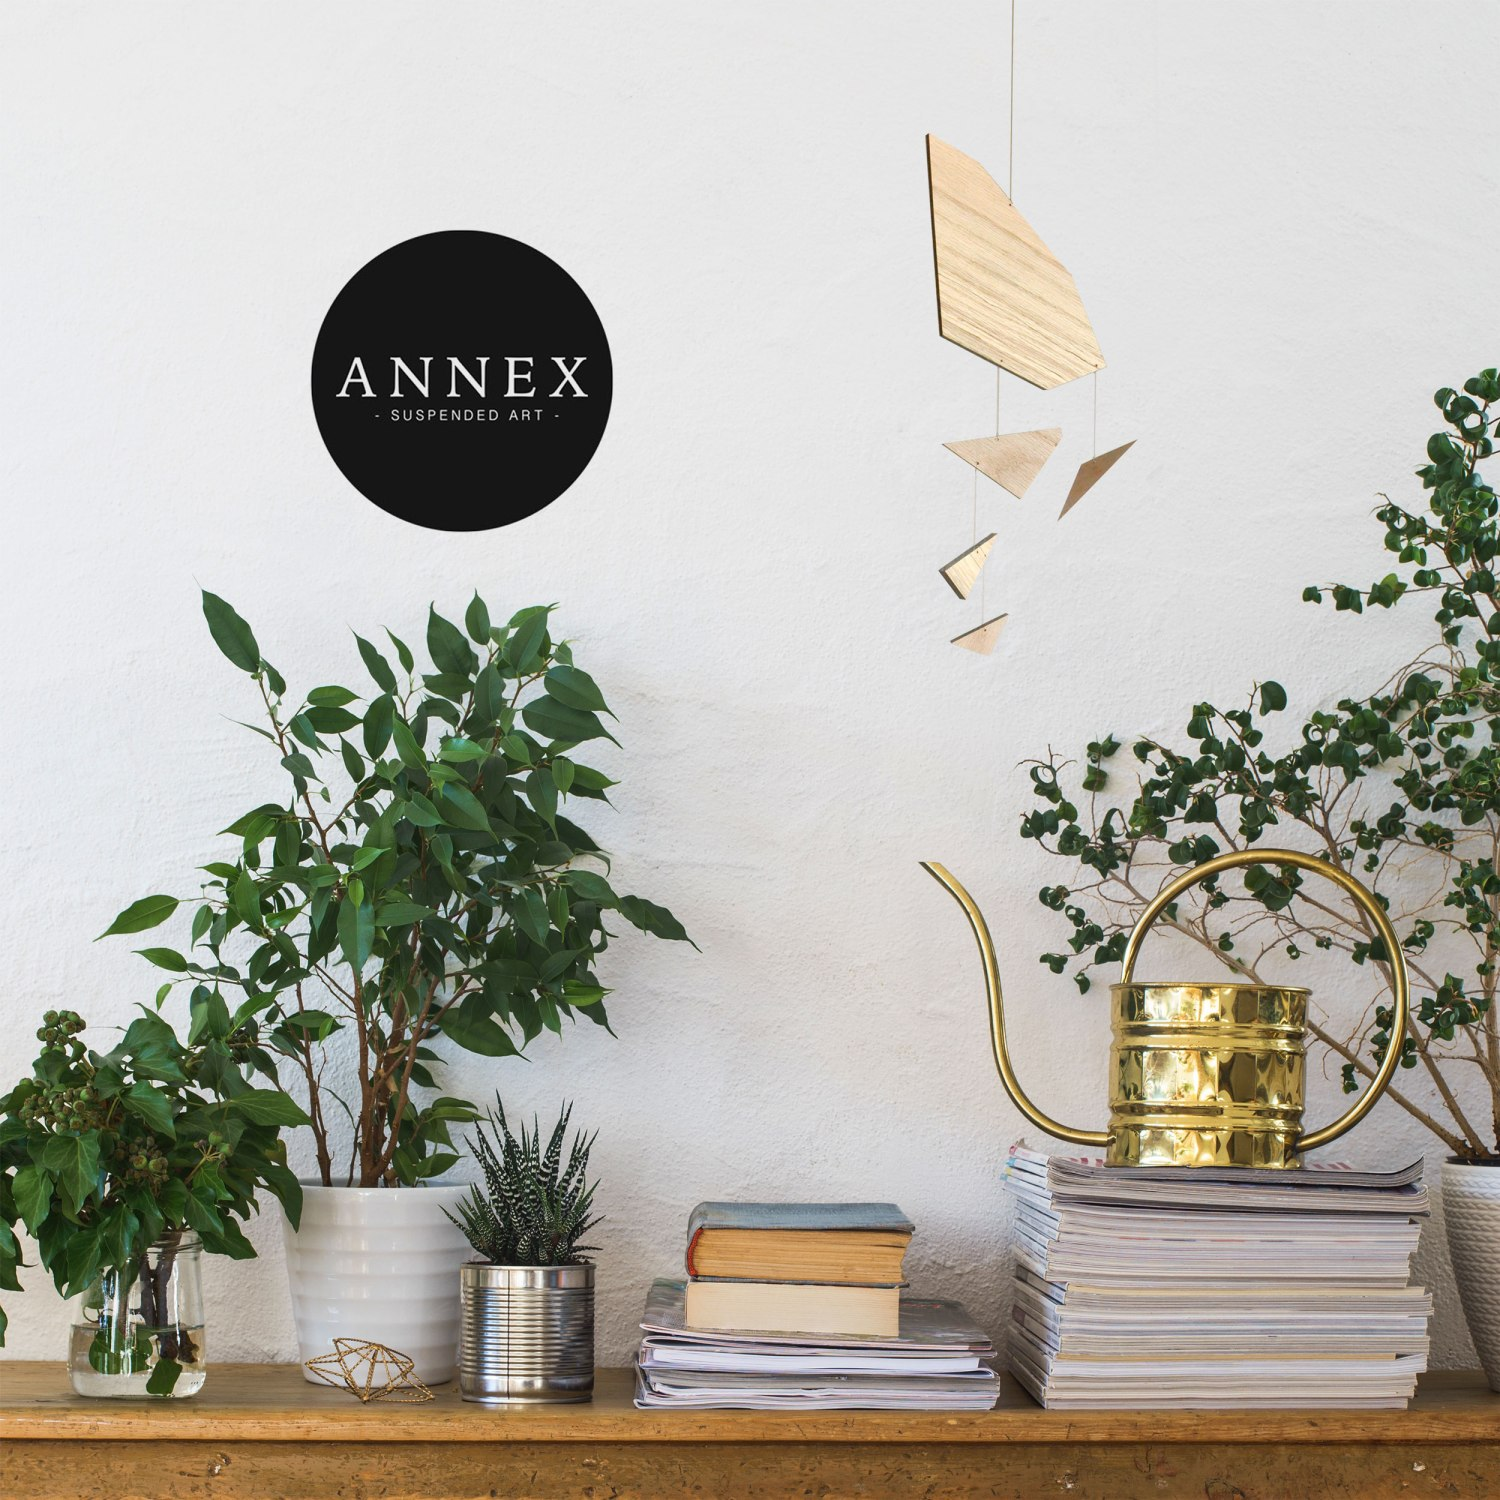 Annex Suspended Art - Wood Mobile Art, Adult Mobiles Abstract Design